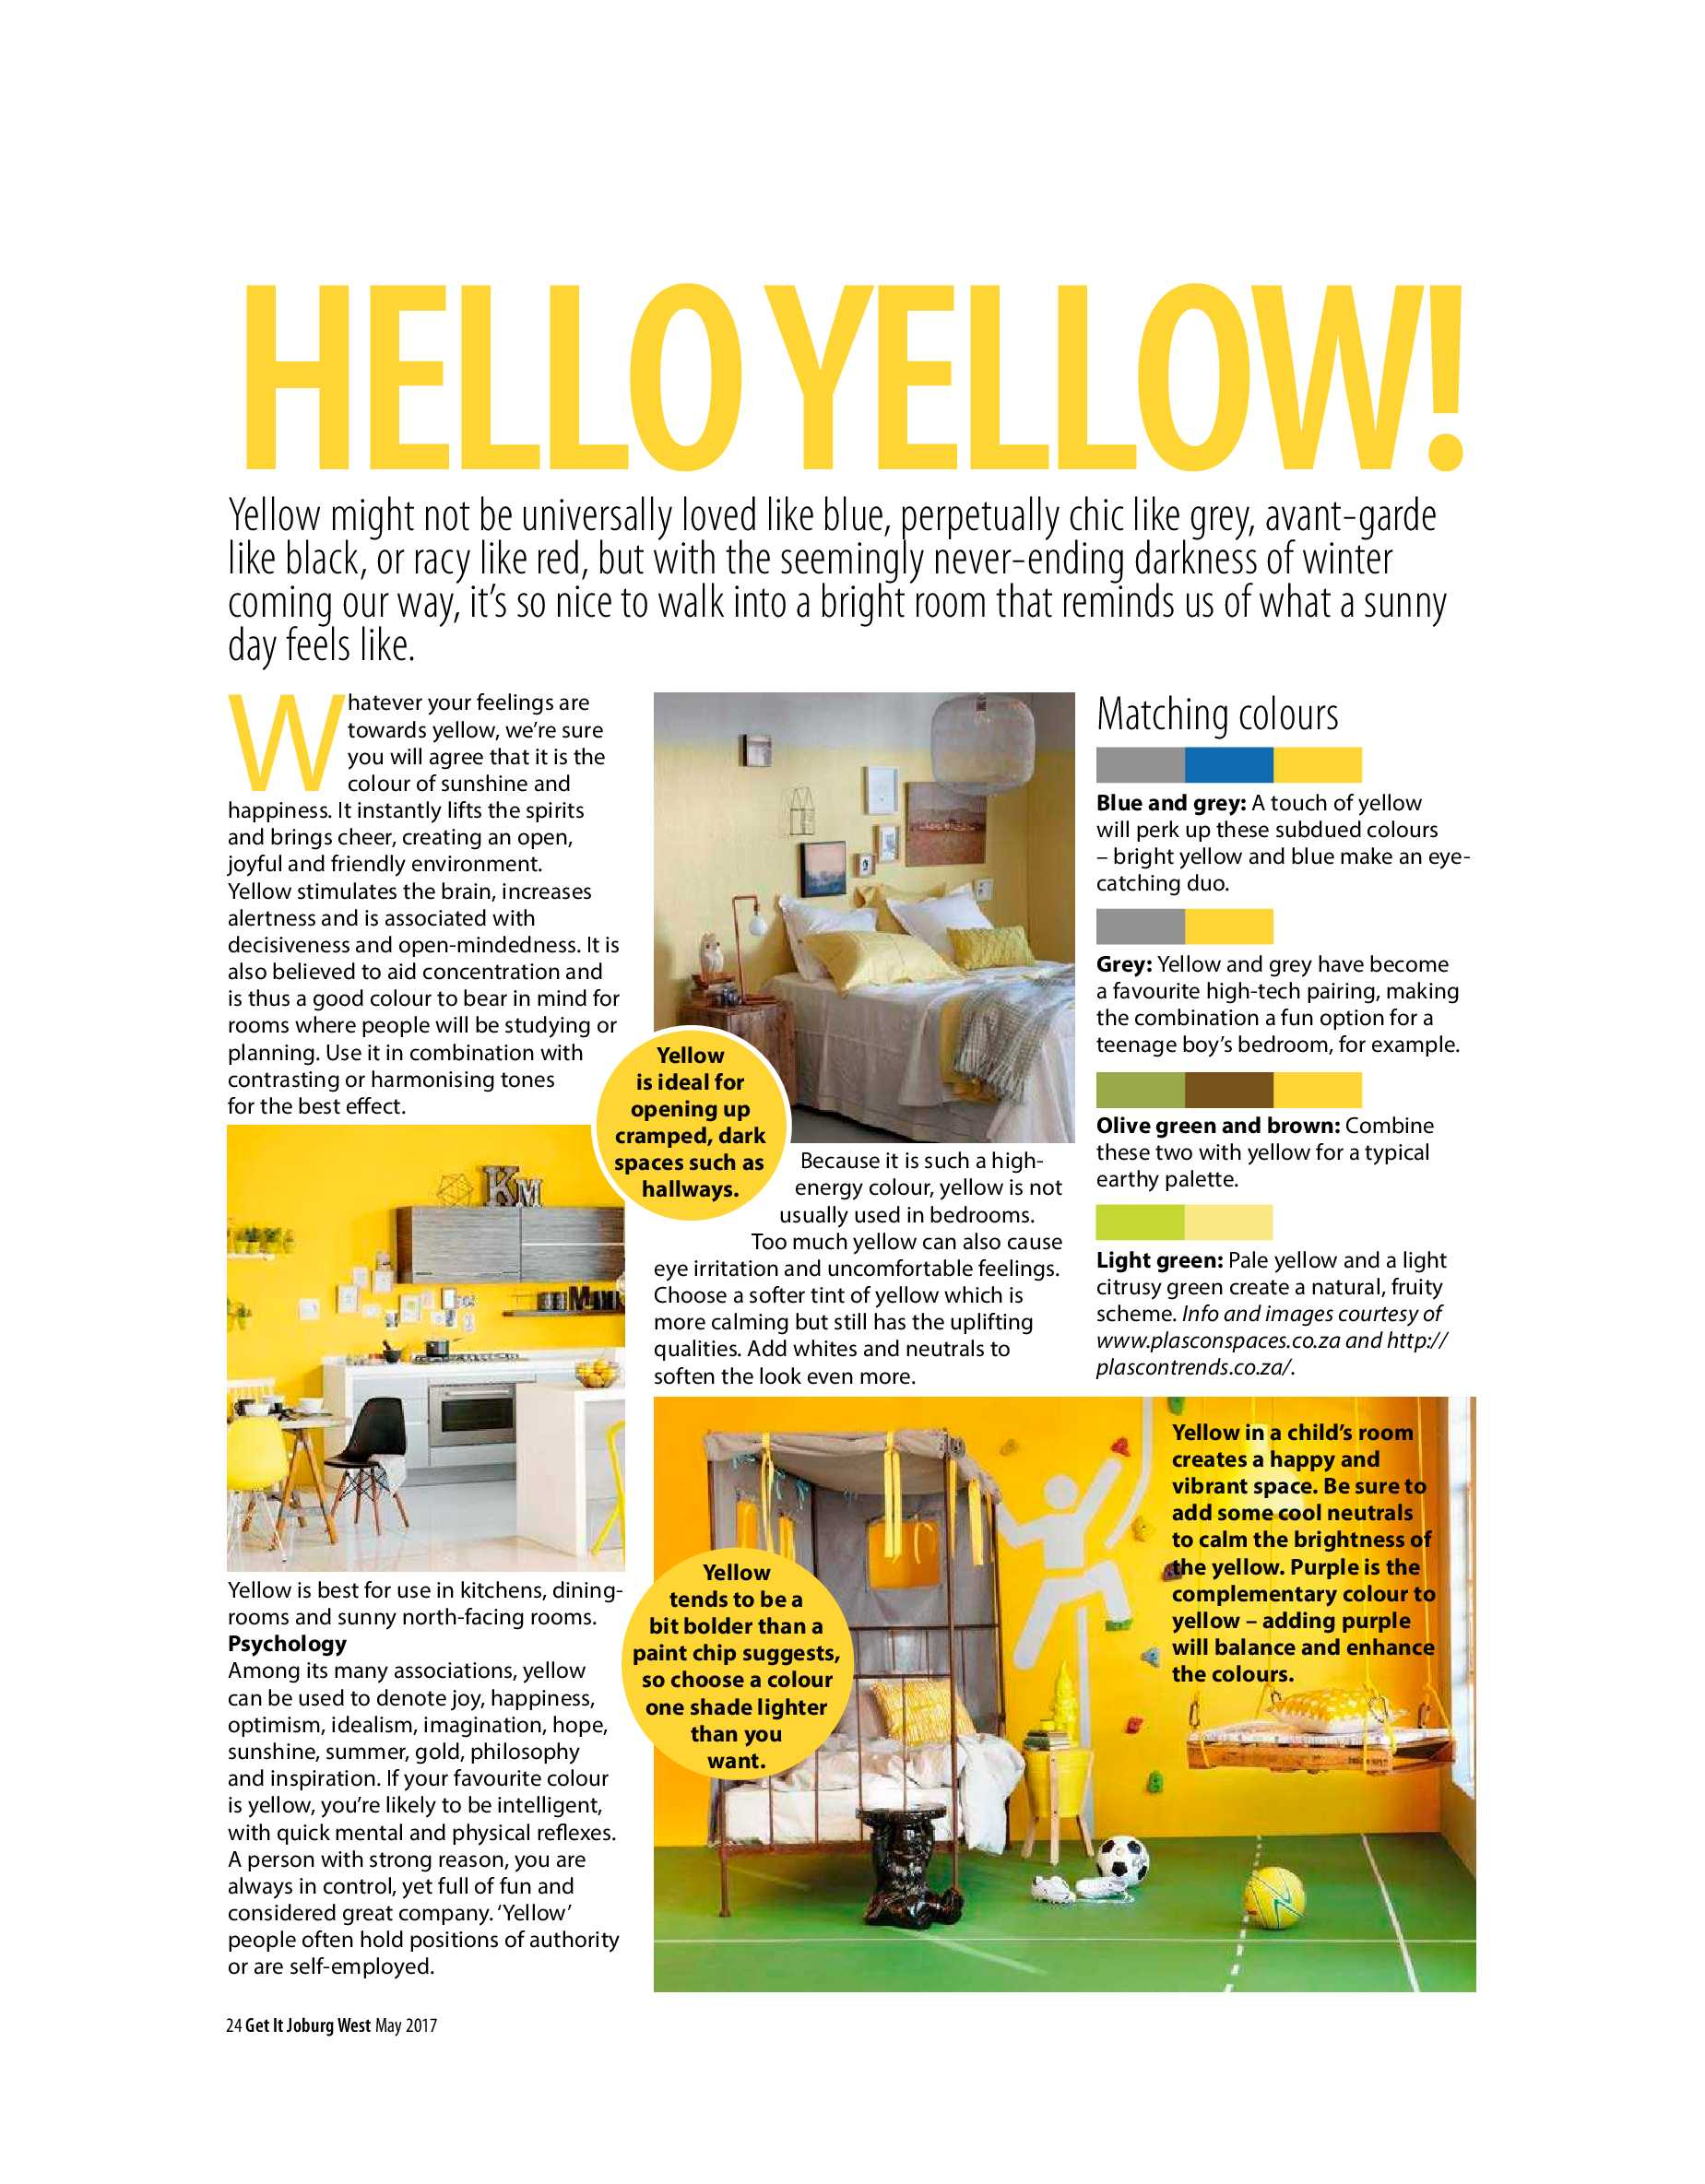 get-joburg-west-may-2017-epapers-page-24